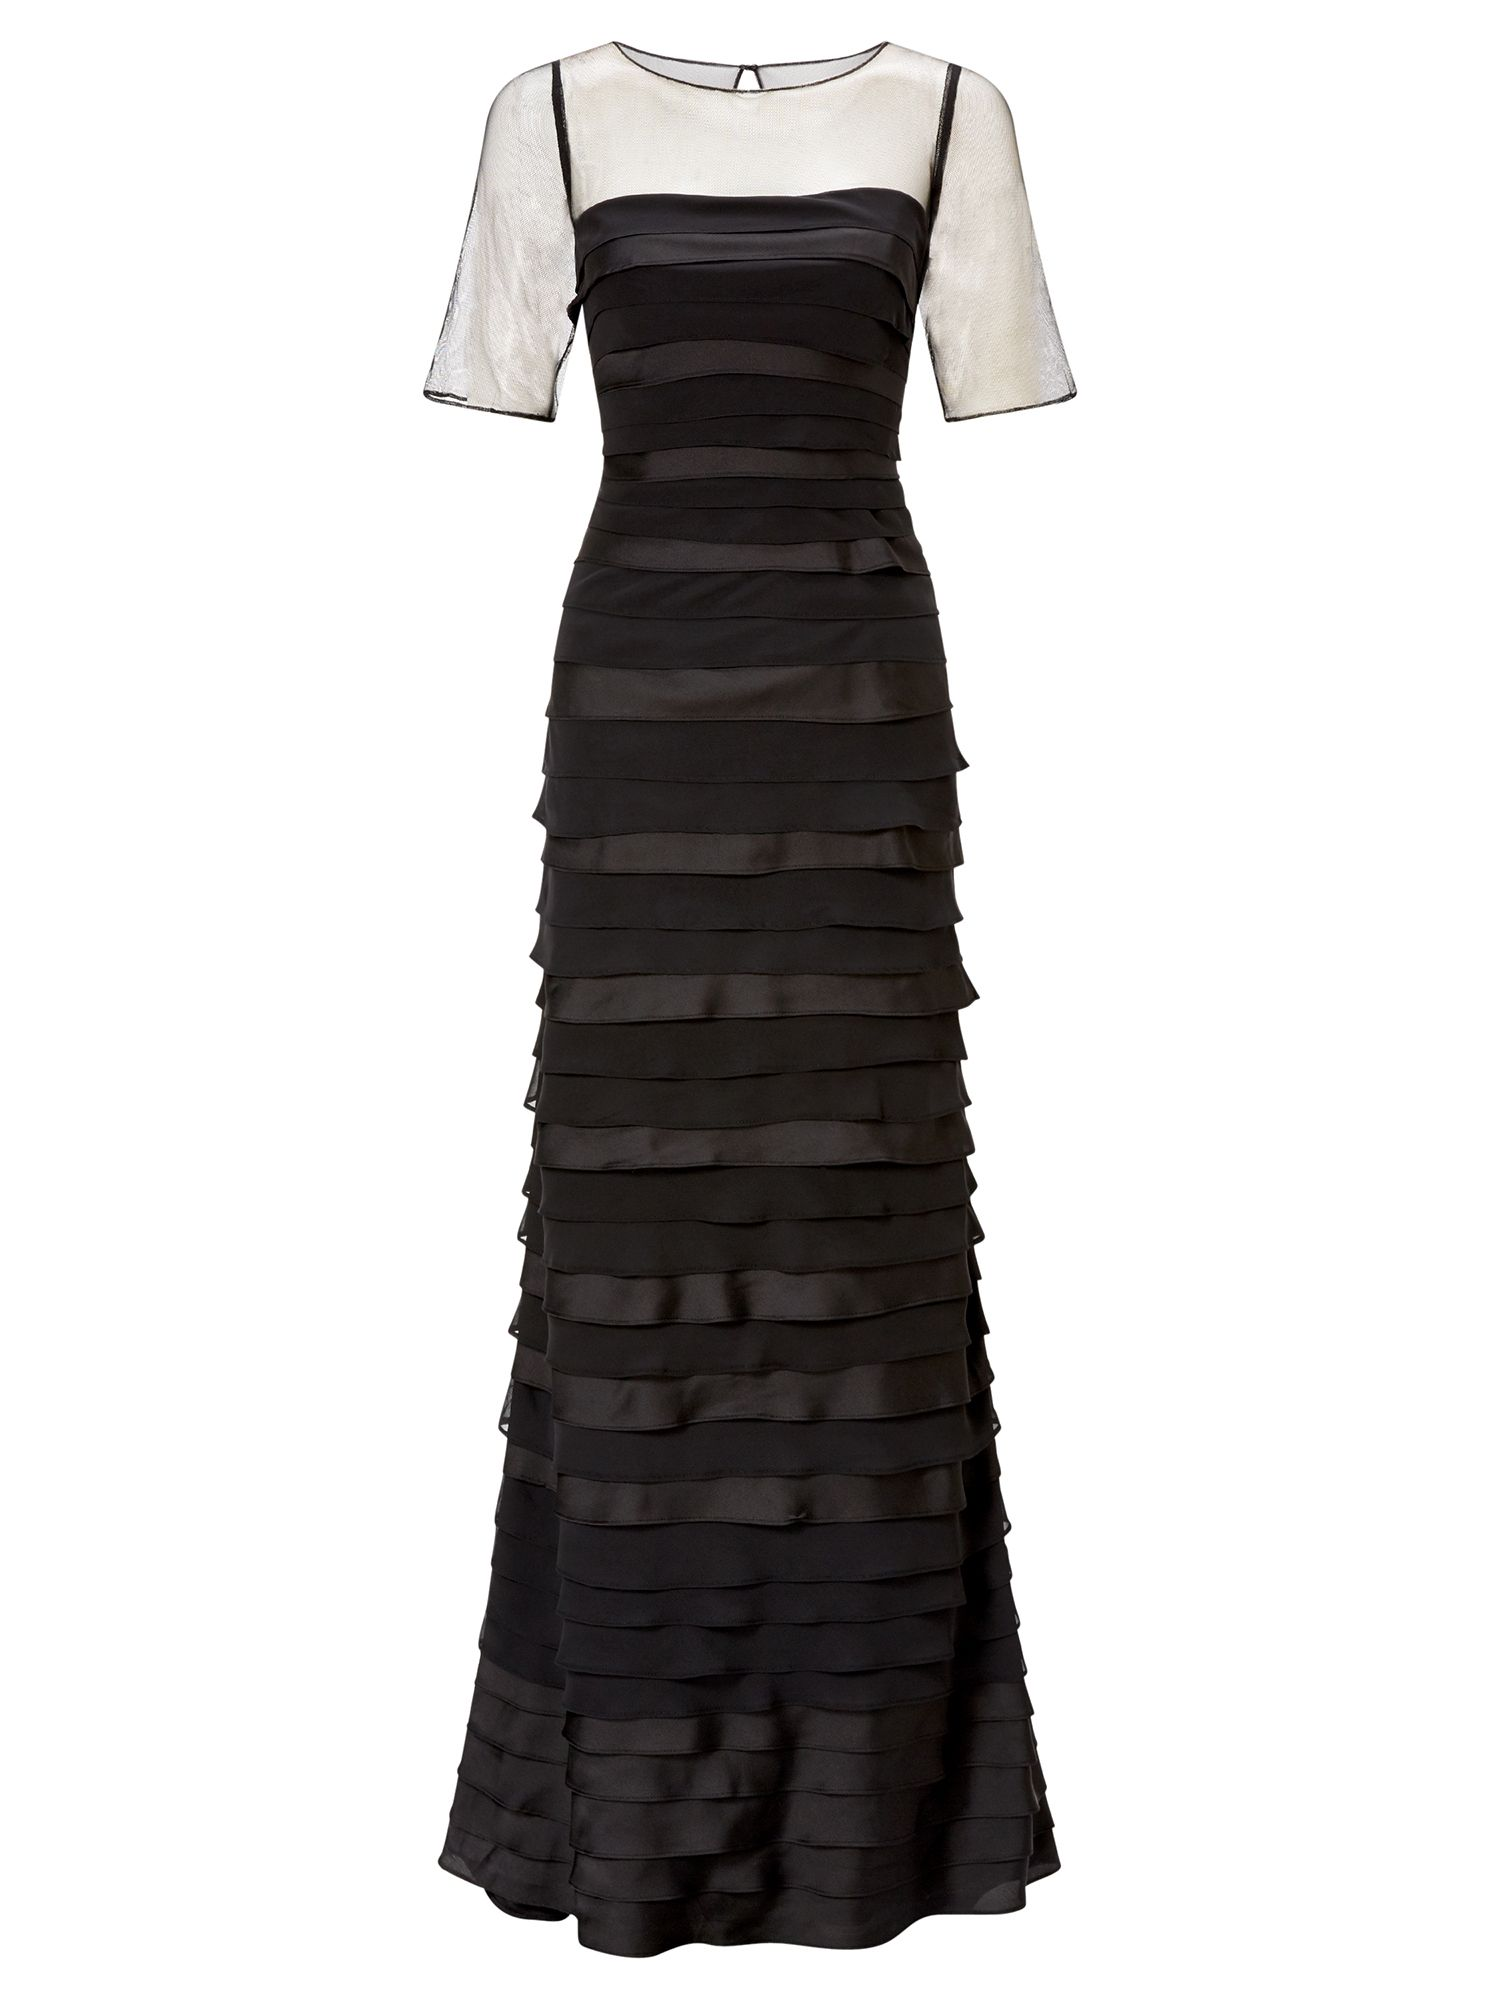 Adrianna Papell Layer Evening Dress, Black